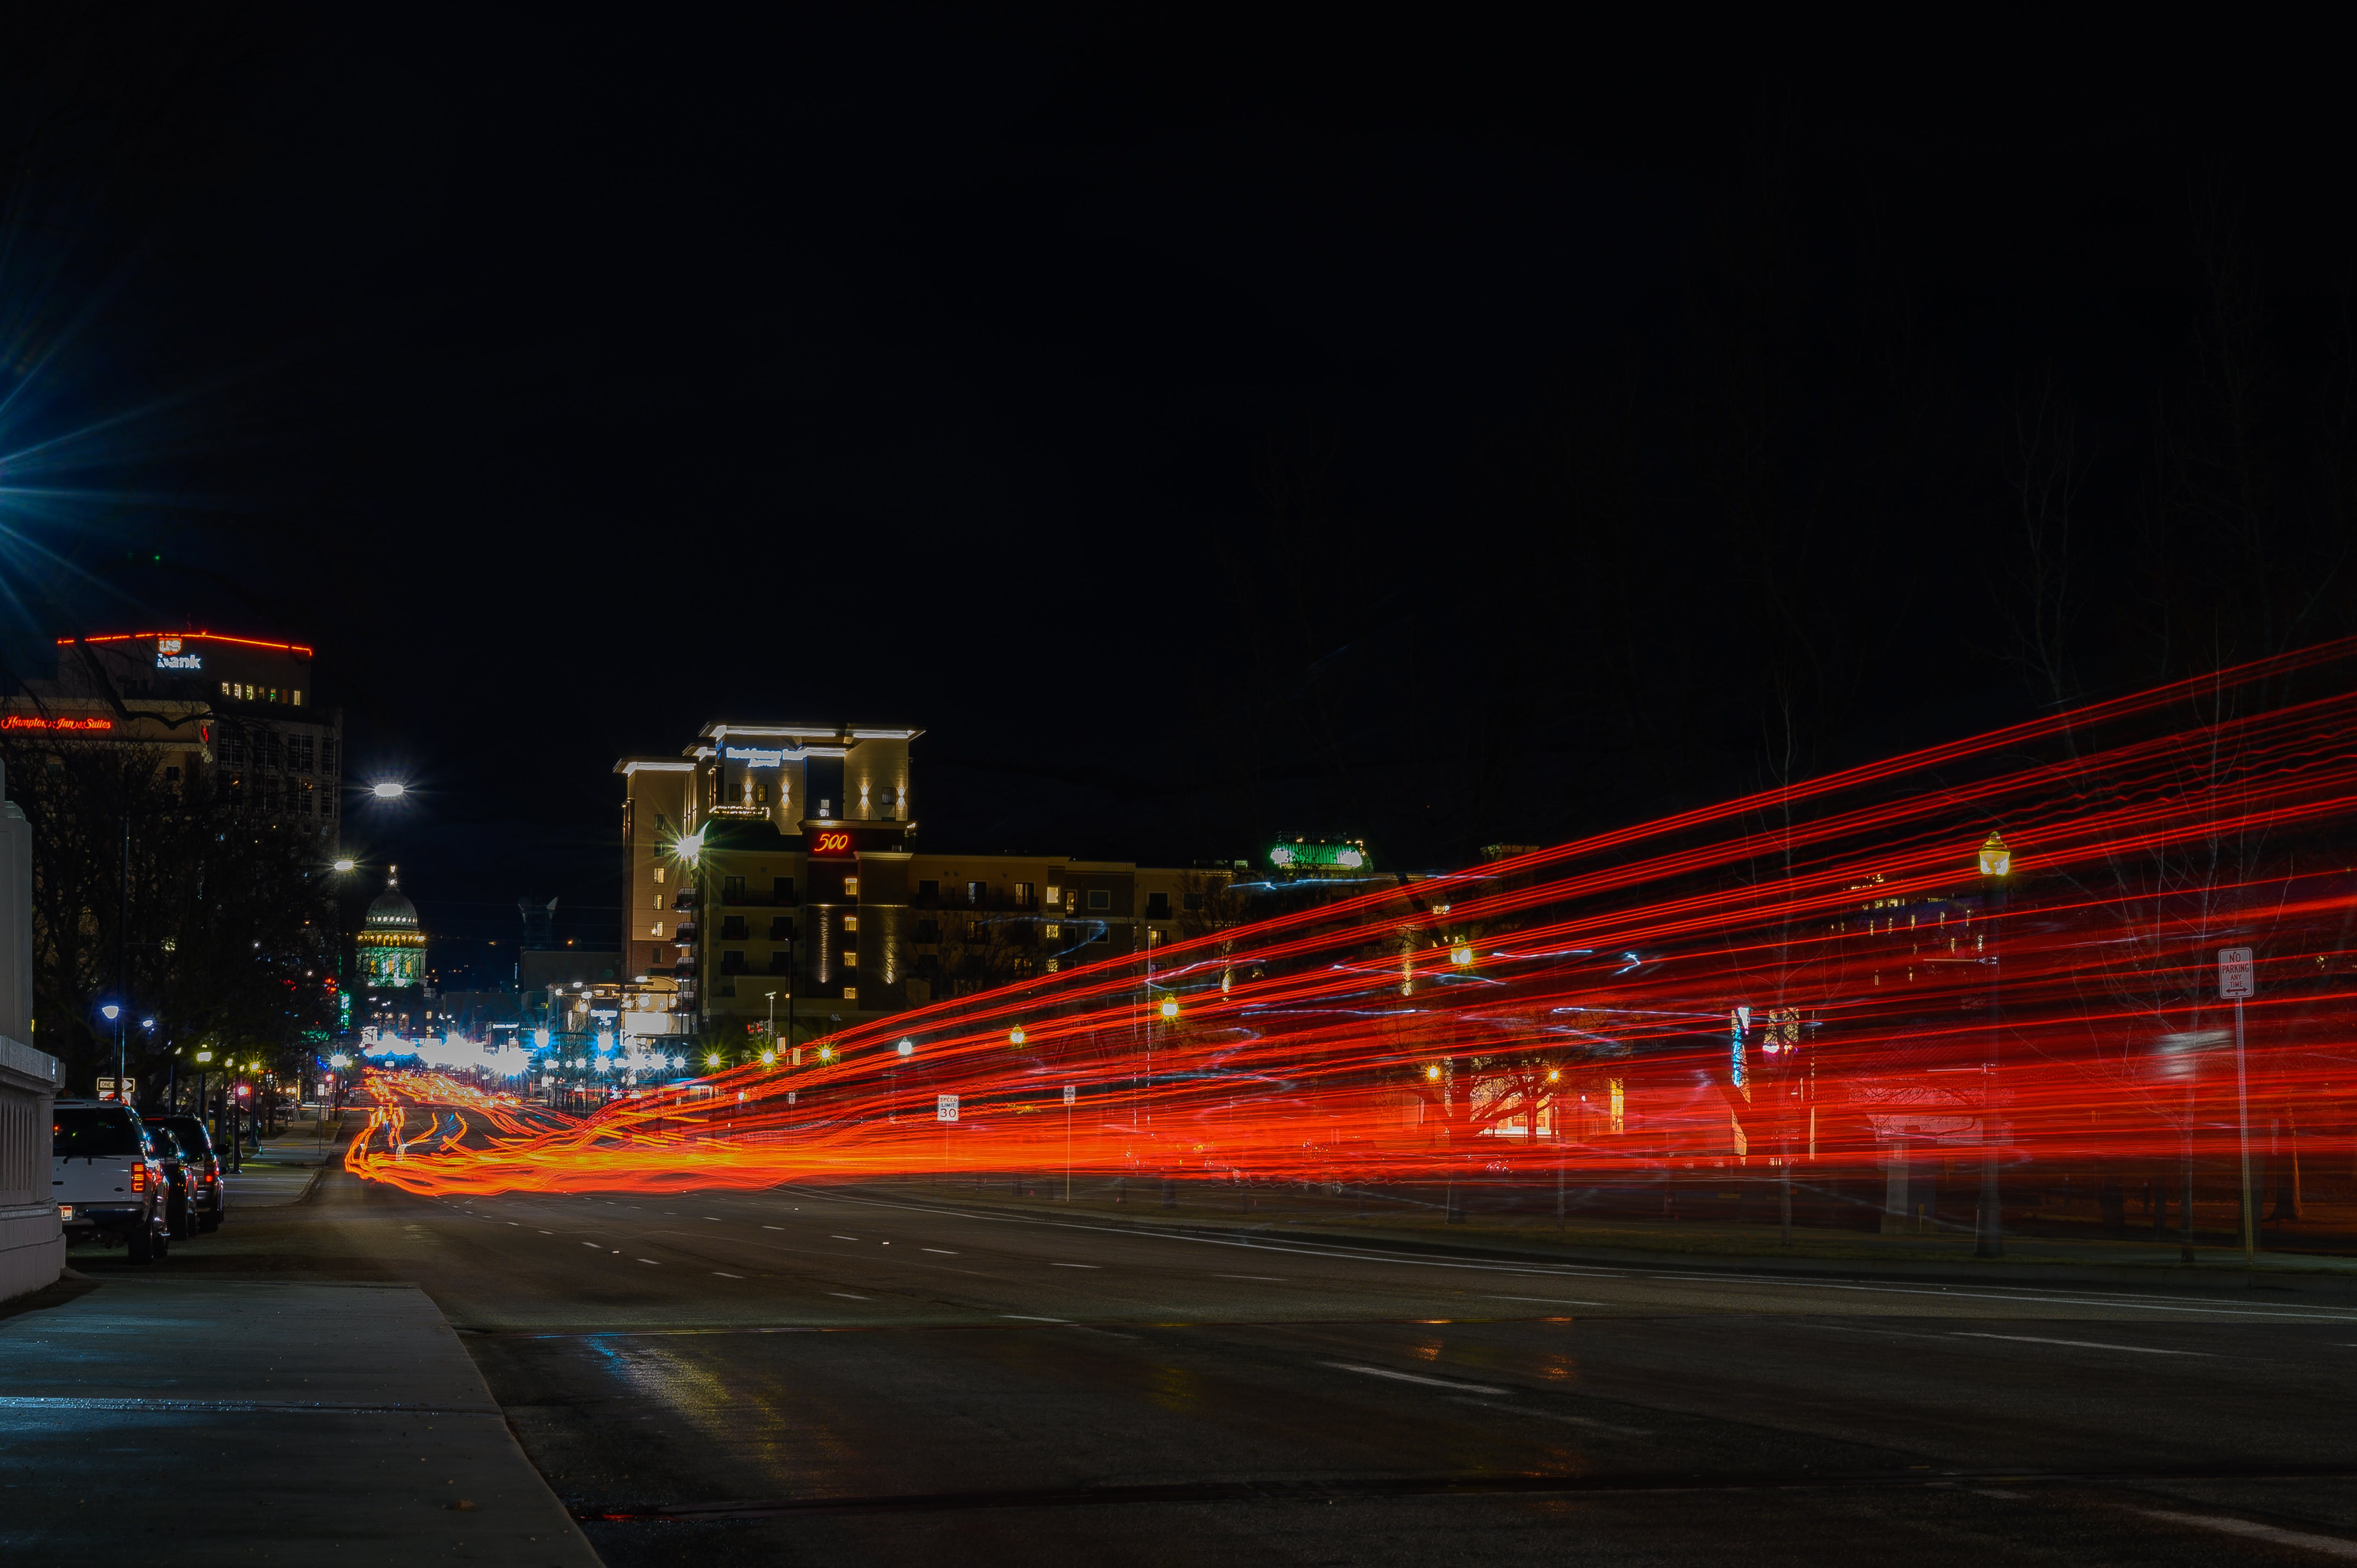 Time Lapse Photo of Highway